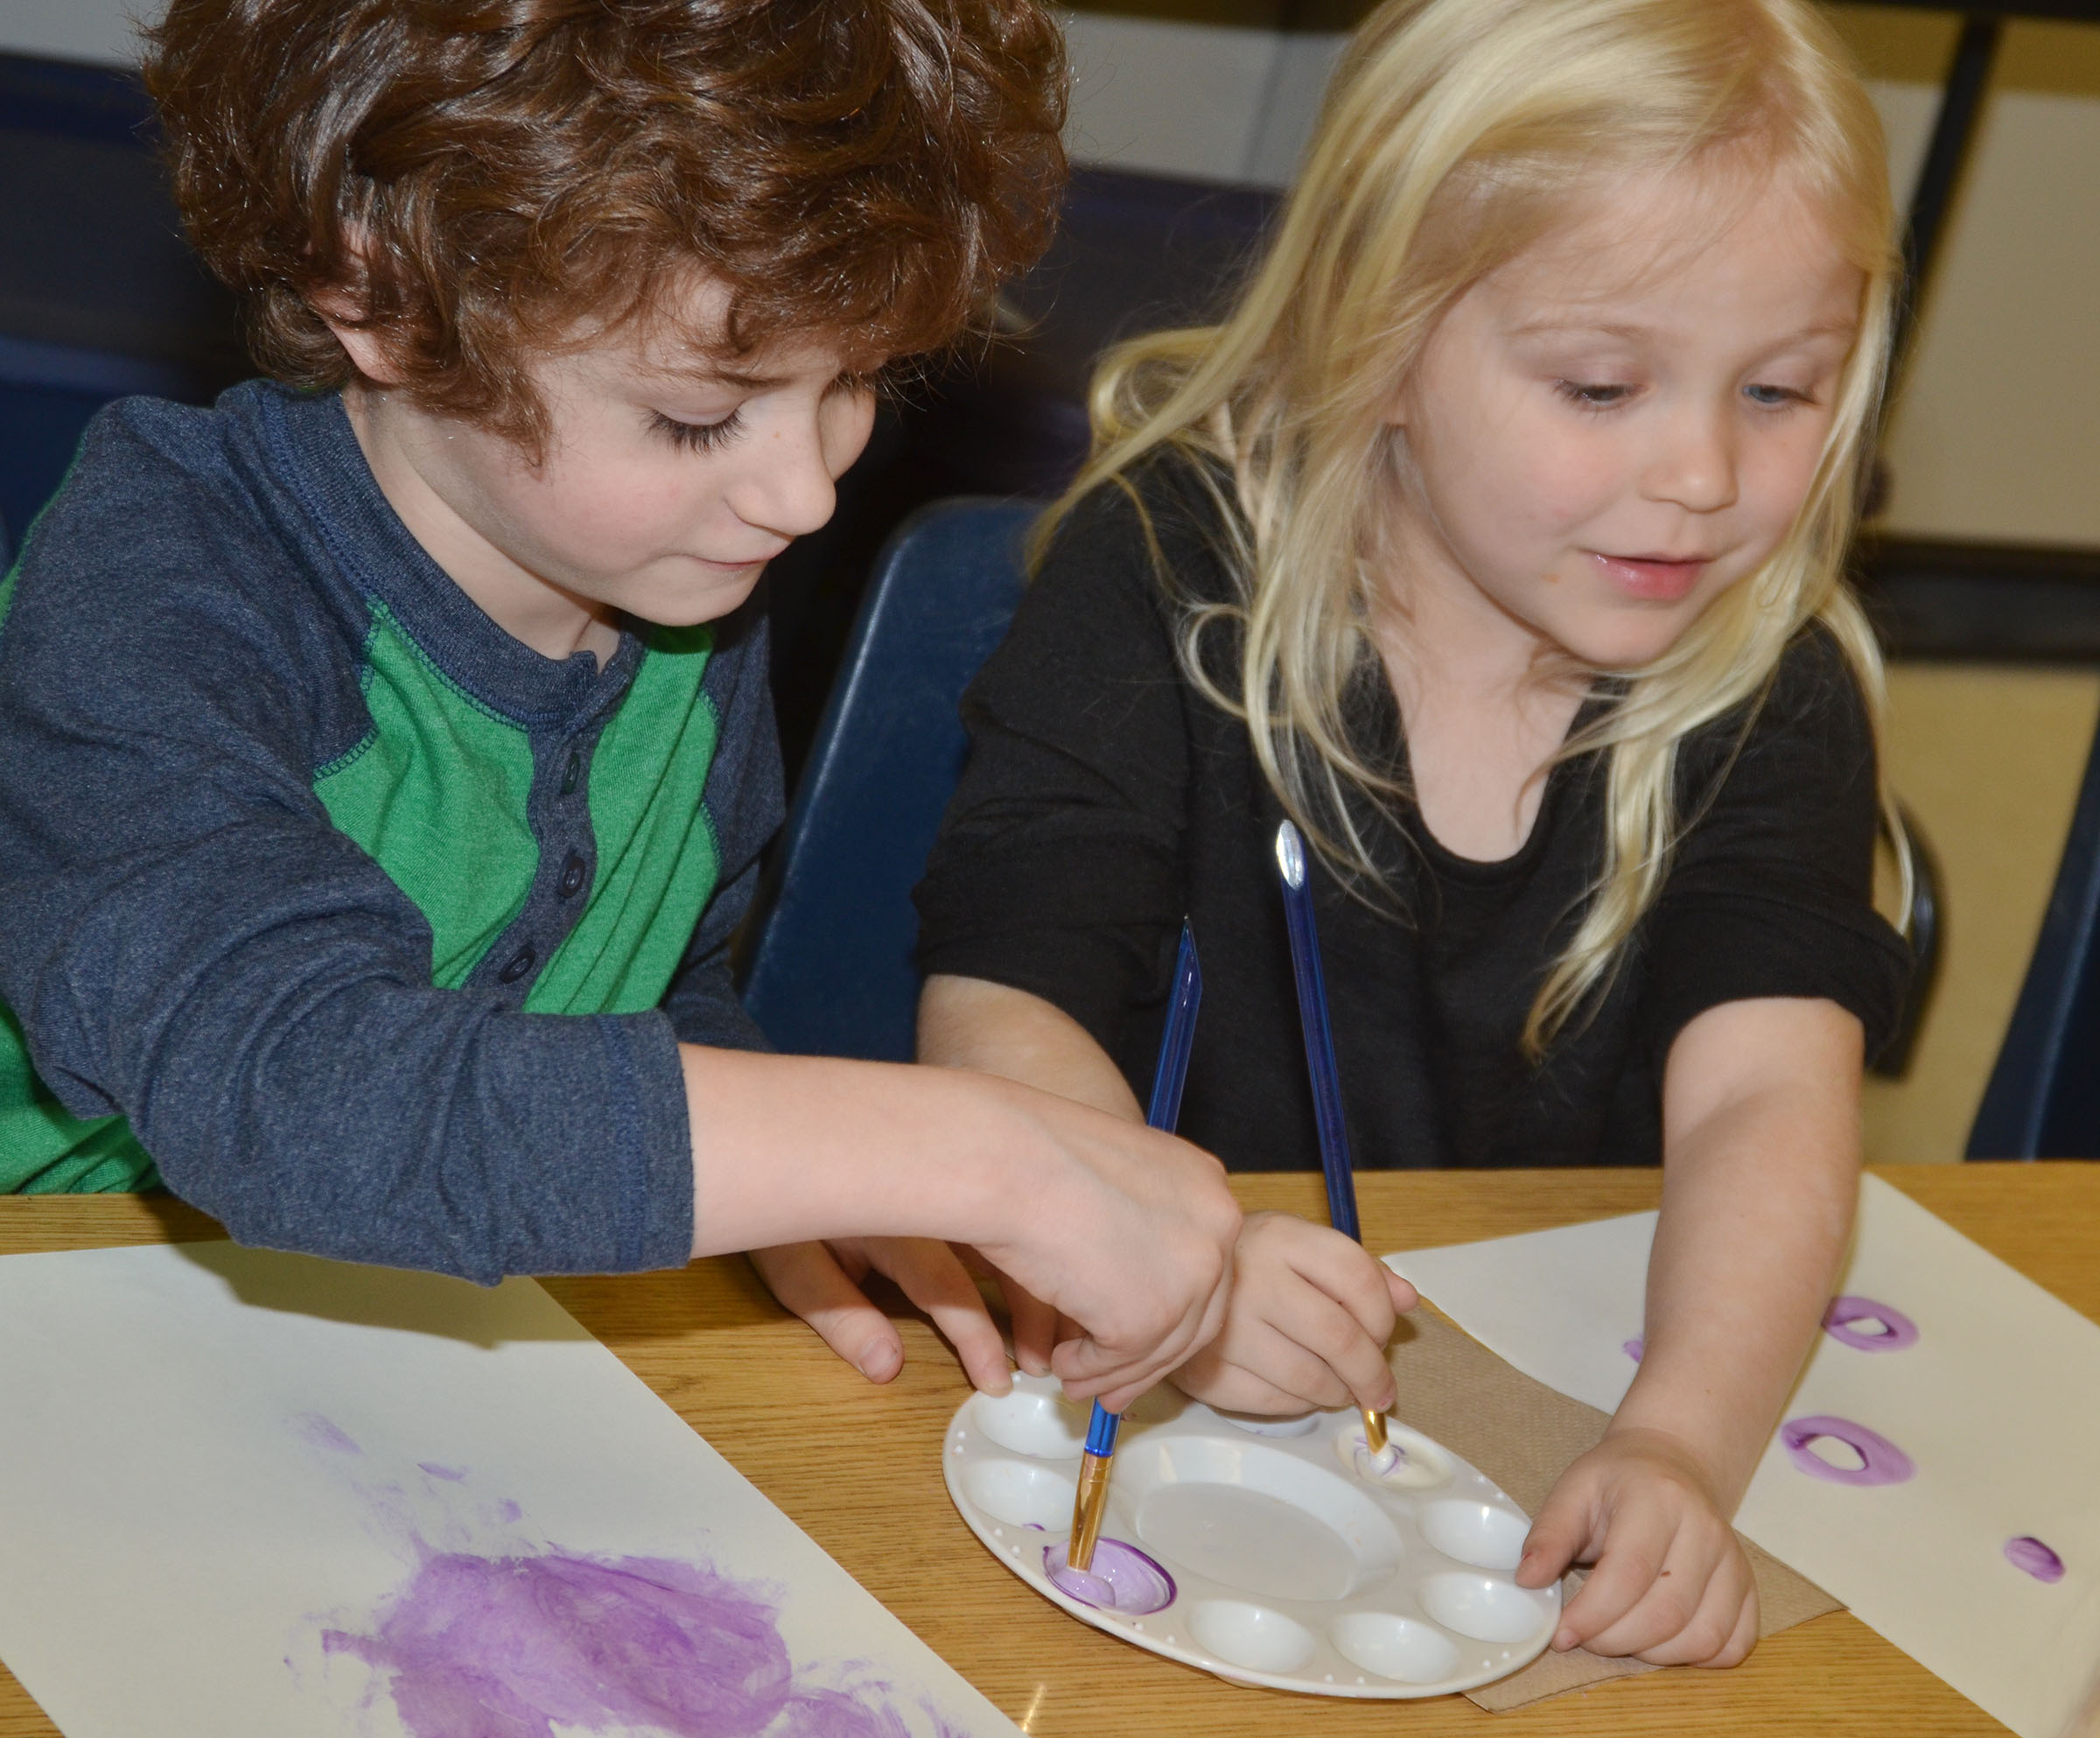 CES kindergarteners Greyson Trulock, at left, and Ava Bennett-Marr mix a light shade of purple paint.